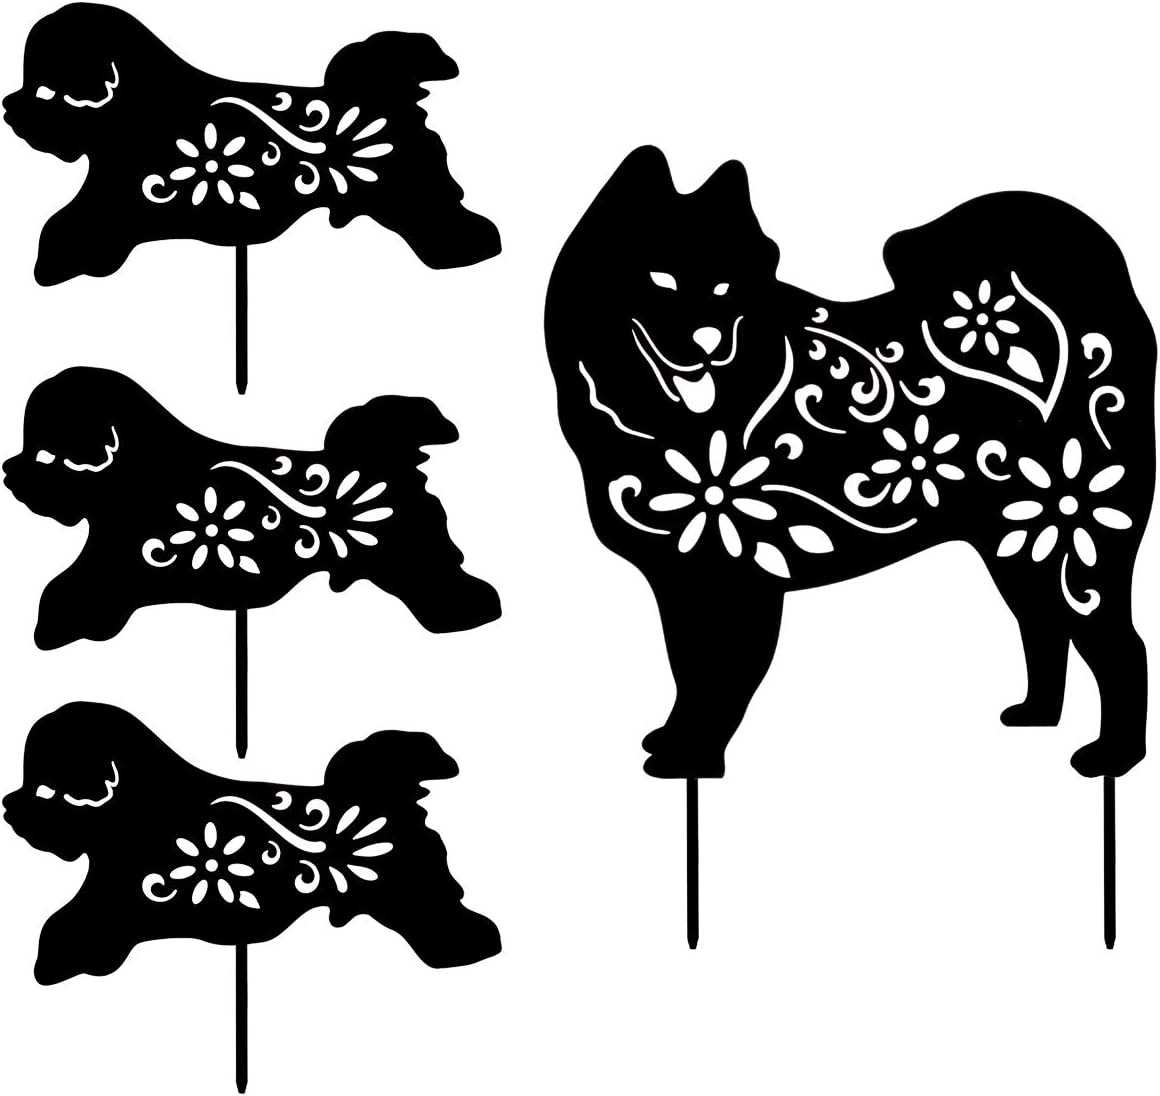 YEAHOME Metal Dog Garden Statues - Dog Decor Silhouette Stake Garden Art, Set of 4, Animal Decorative Garden Stakes Yard Ornaments Outdoors, Gifts for Dog Lovers